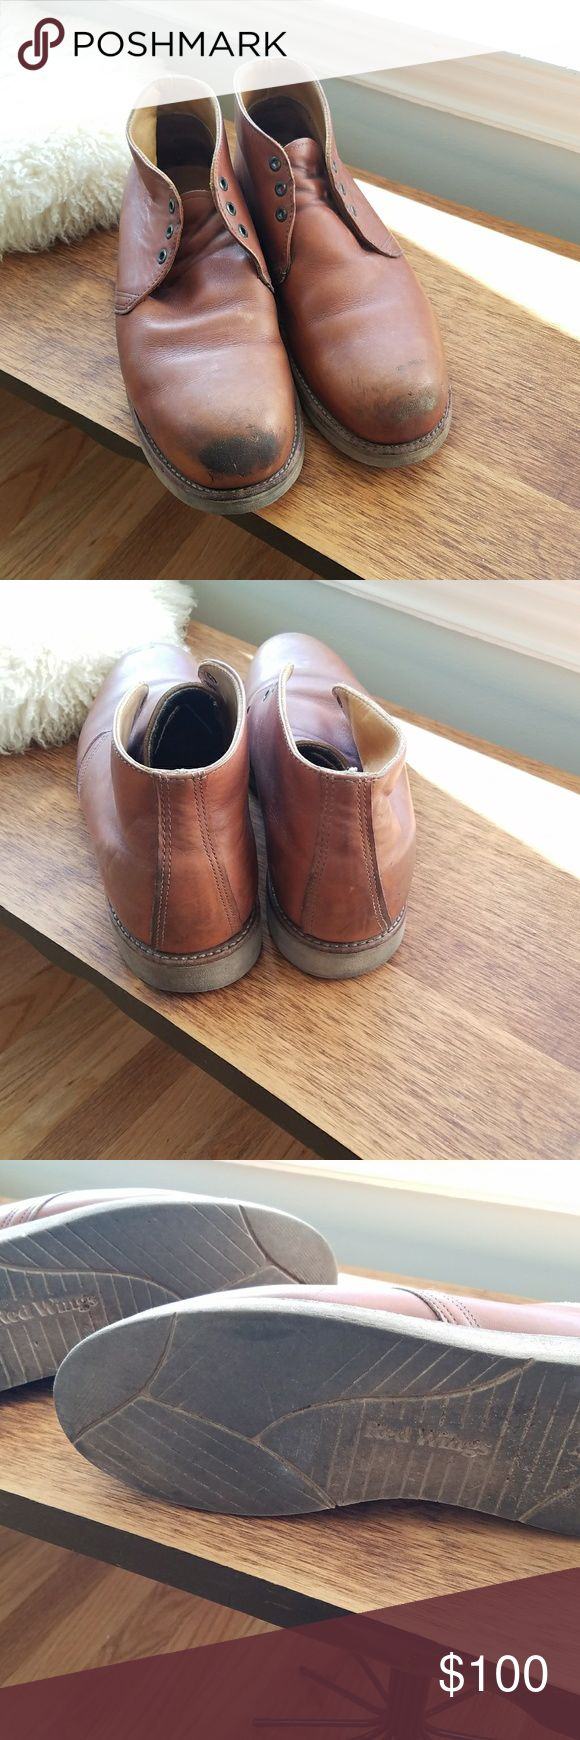 Men's RED WING Chukka Safety Toe Made in USA 11 Men's RED WING Chukka Made in USA 11D. Safety toe. Style 2595. Good condition. No laces. Red Wing Shoes Shoes Chukka Boots